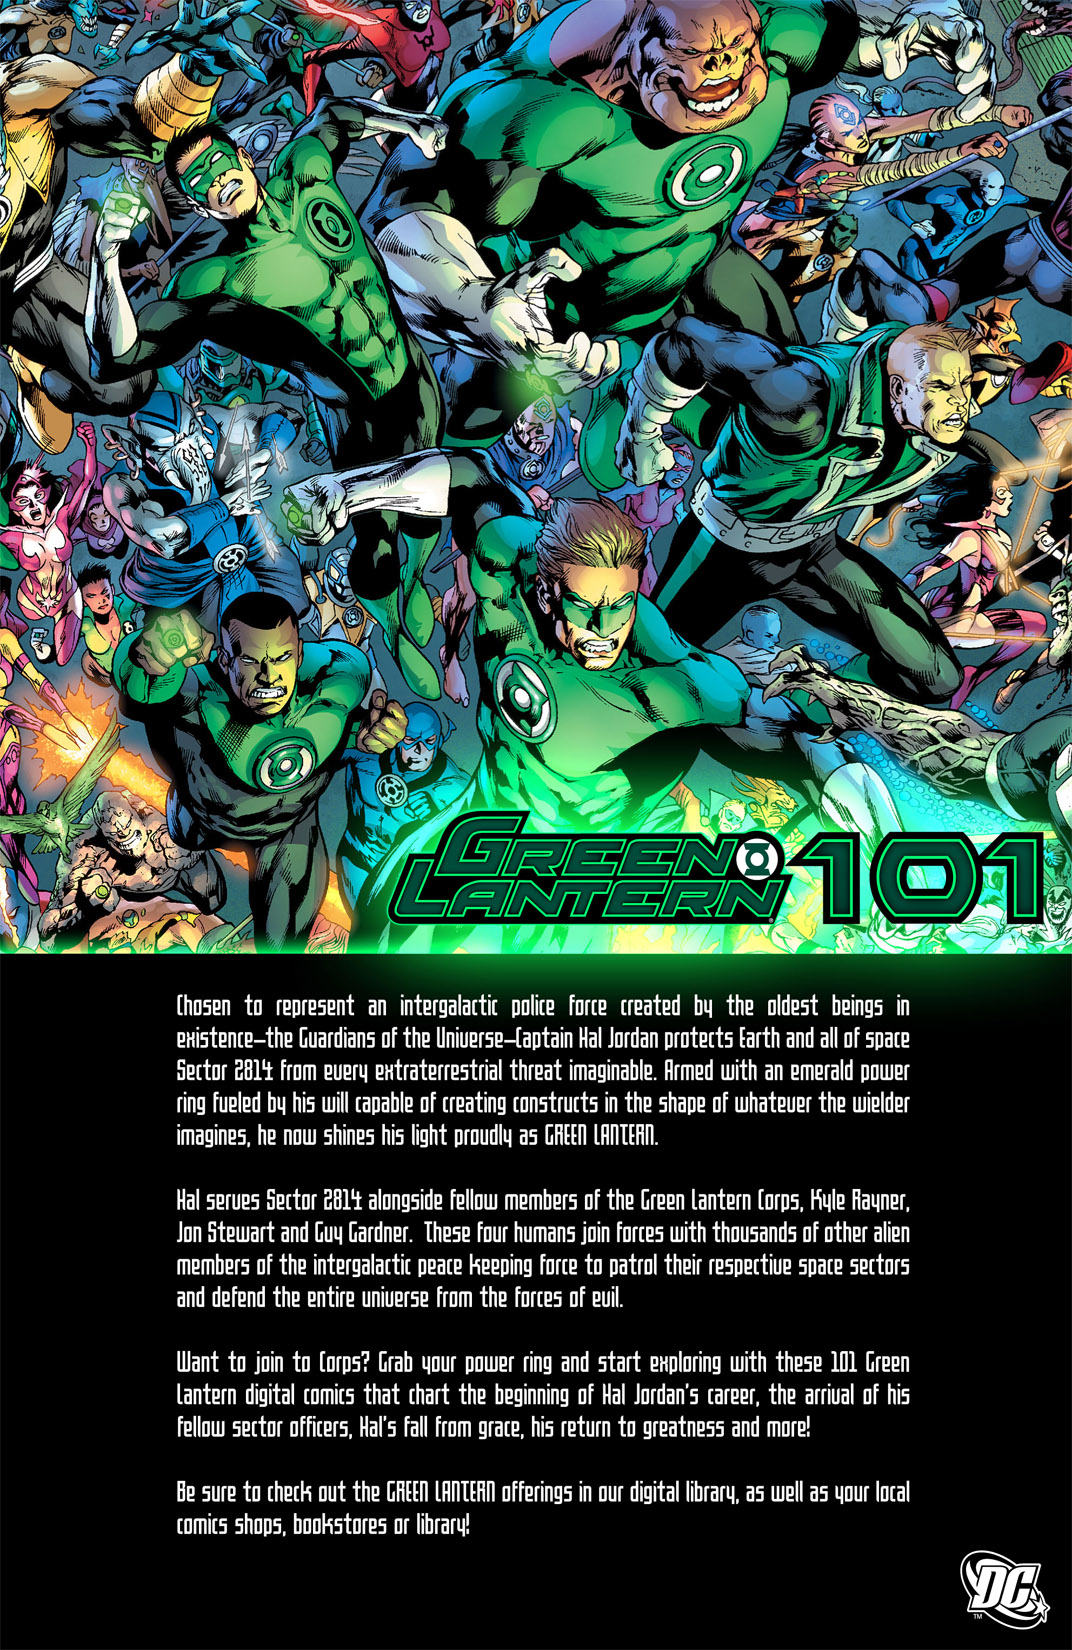 Read online Showcase comic -  Issue #22 - 27